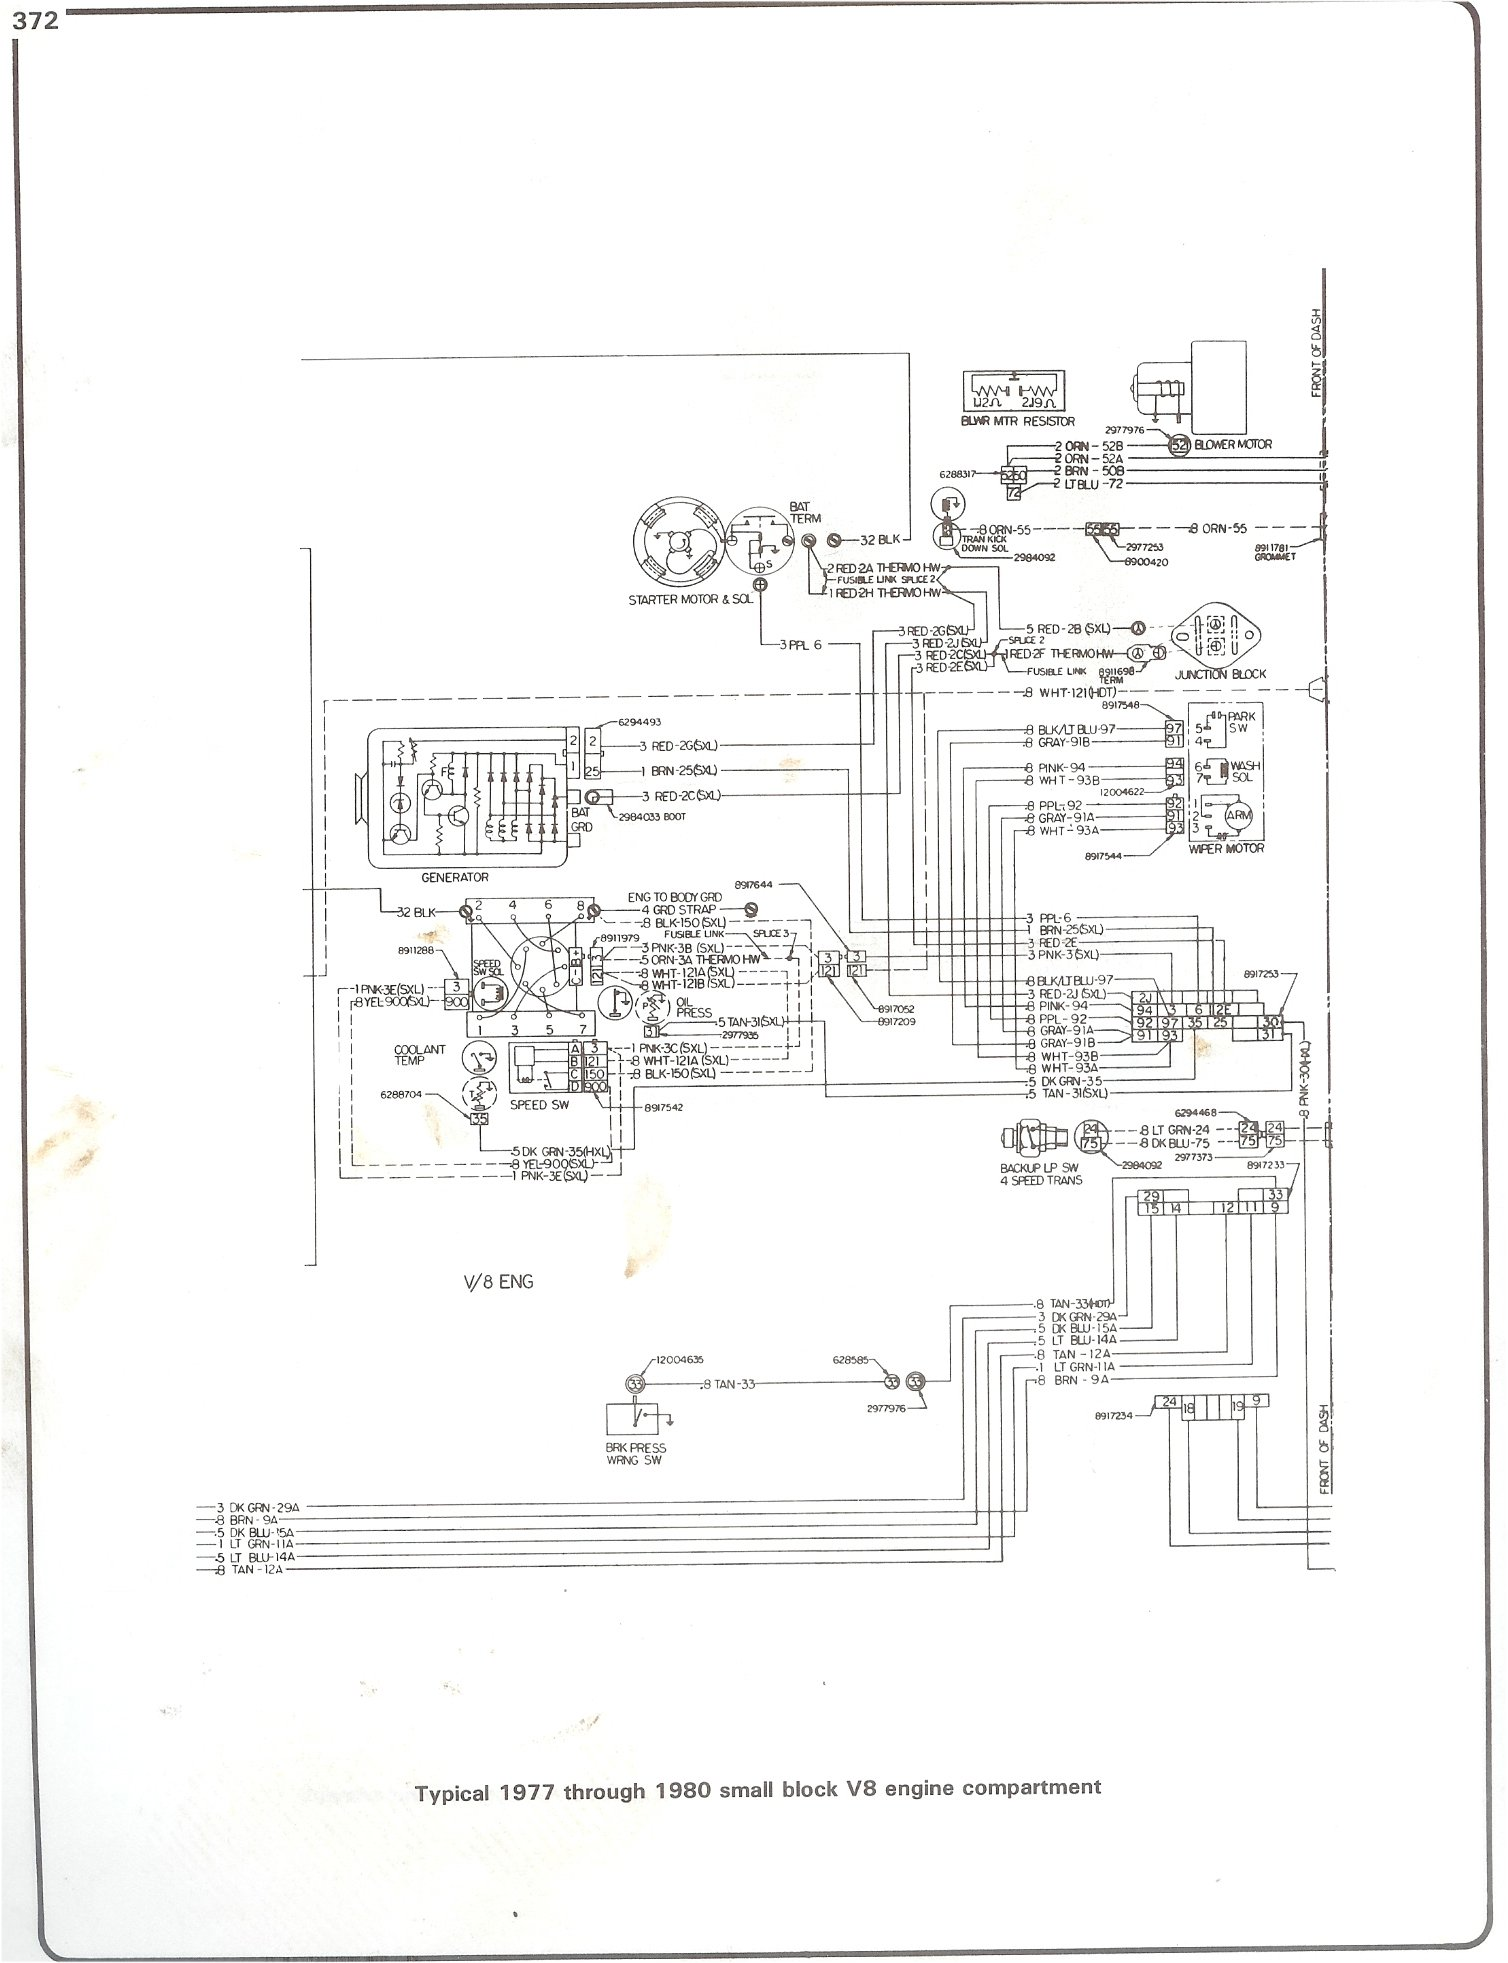 75 K 5 Wiring Diagram - Wiring Diagrams Second Ke Light Wiring Diagram Chevy S on chevy s10 relay, 85 chevy truck wiring diagram, 93 chevy truck wiring diagram, 1985 chevy truck wiring diagram, chevy 1500 wiring diagram, chevy k1500 wiring diagram, isuzu hombre wiring diagram, chevy cruze wiring diagram, chevy lumina wiring diagram, chevy metro wiring diagram, chevy classic wiring diagram, chevy s10 cover, chevy s10 starter wires, chevy pickup wiring diagram, chevy s10 front diagrams, s 10 truck wiring diagram, chevy volt wiring diagram, chevy s10 blazer, s10 electrical diagram, chevy blazer wiring diagram,